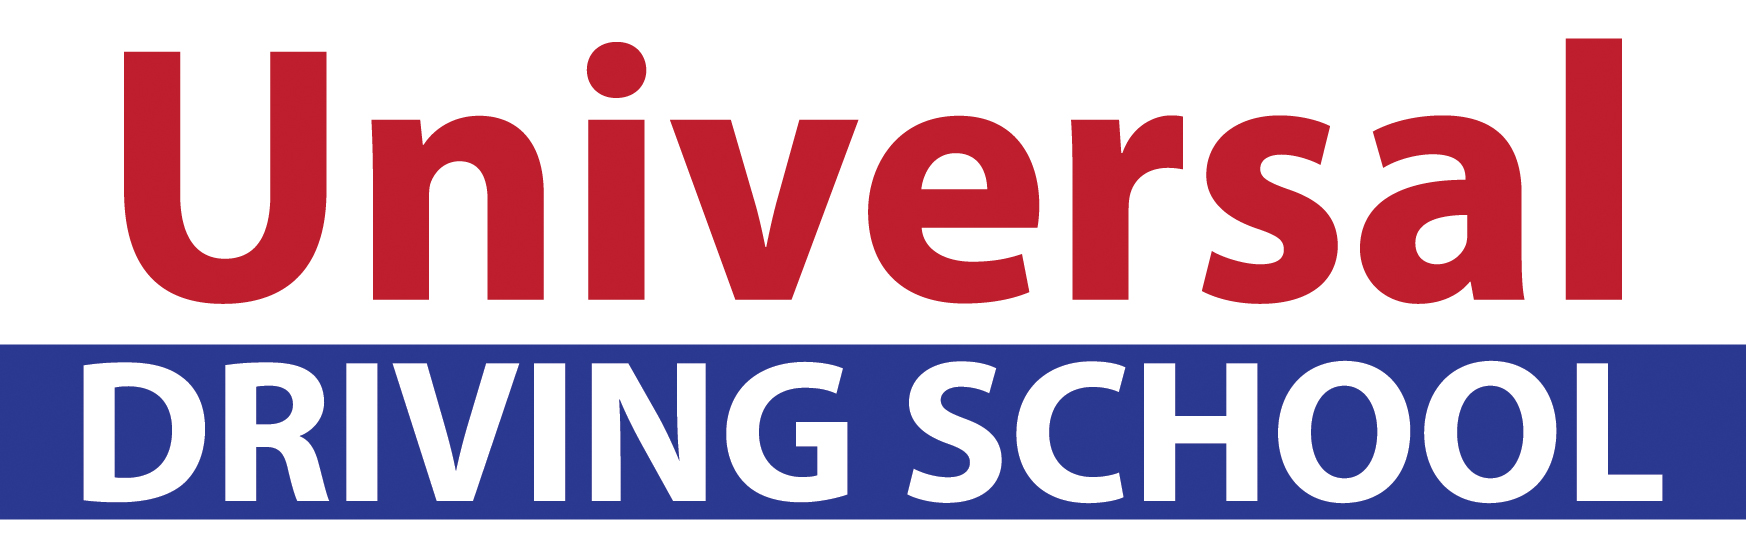 Universal Driving School Ottawa Inc.